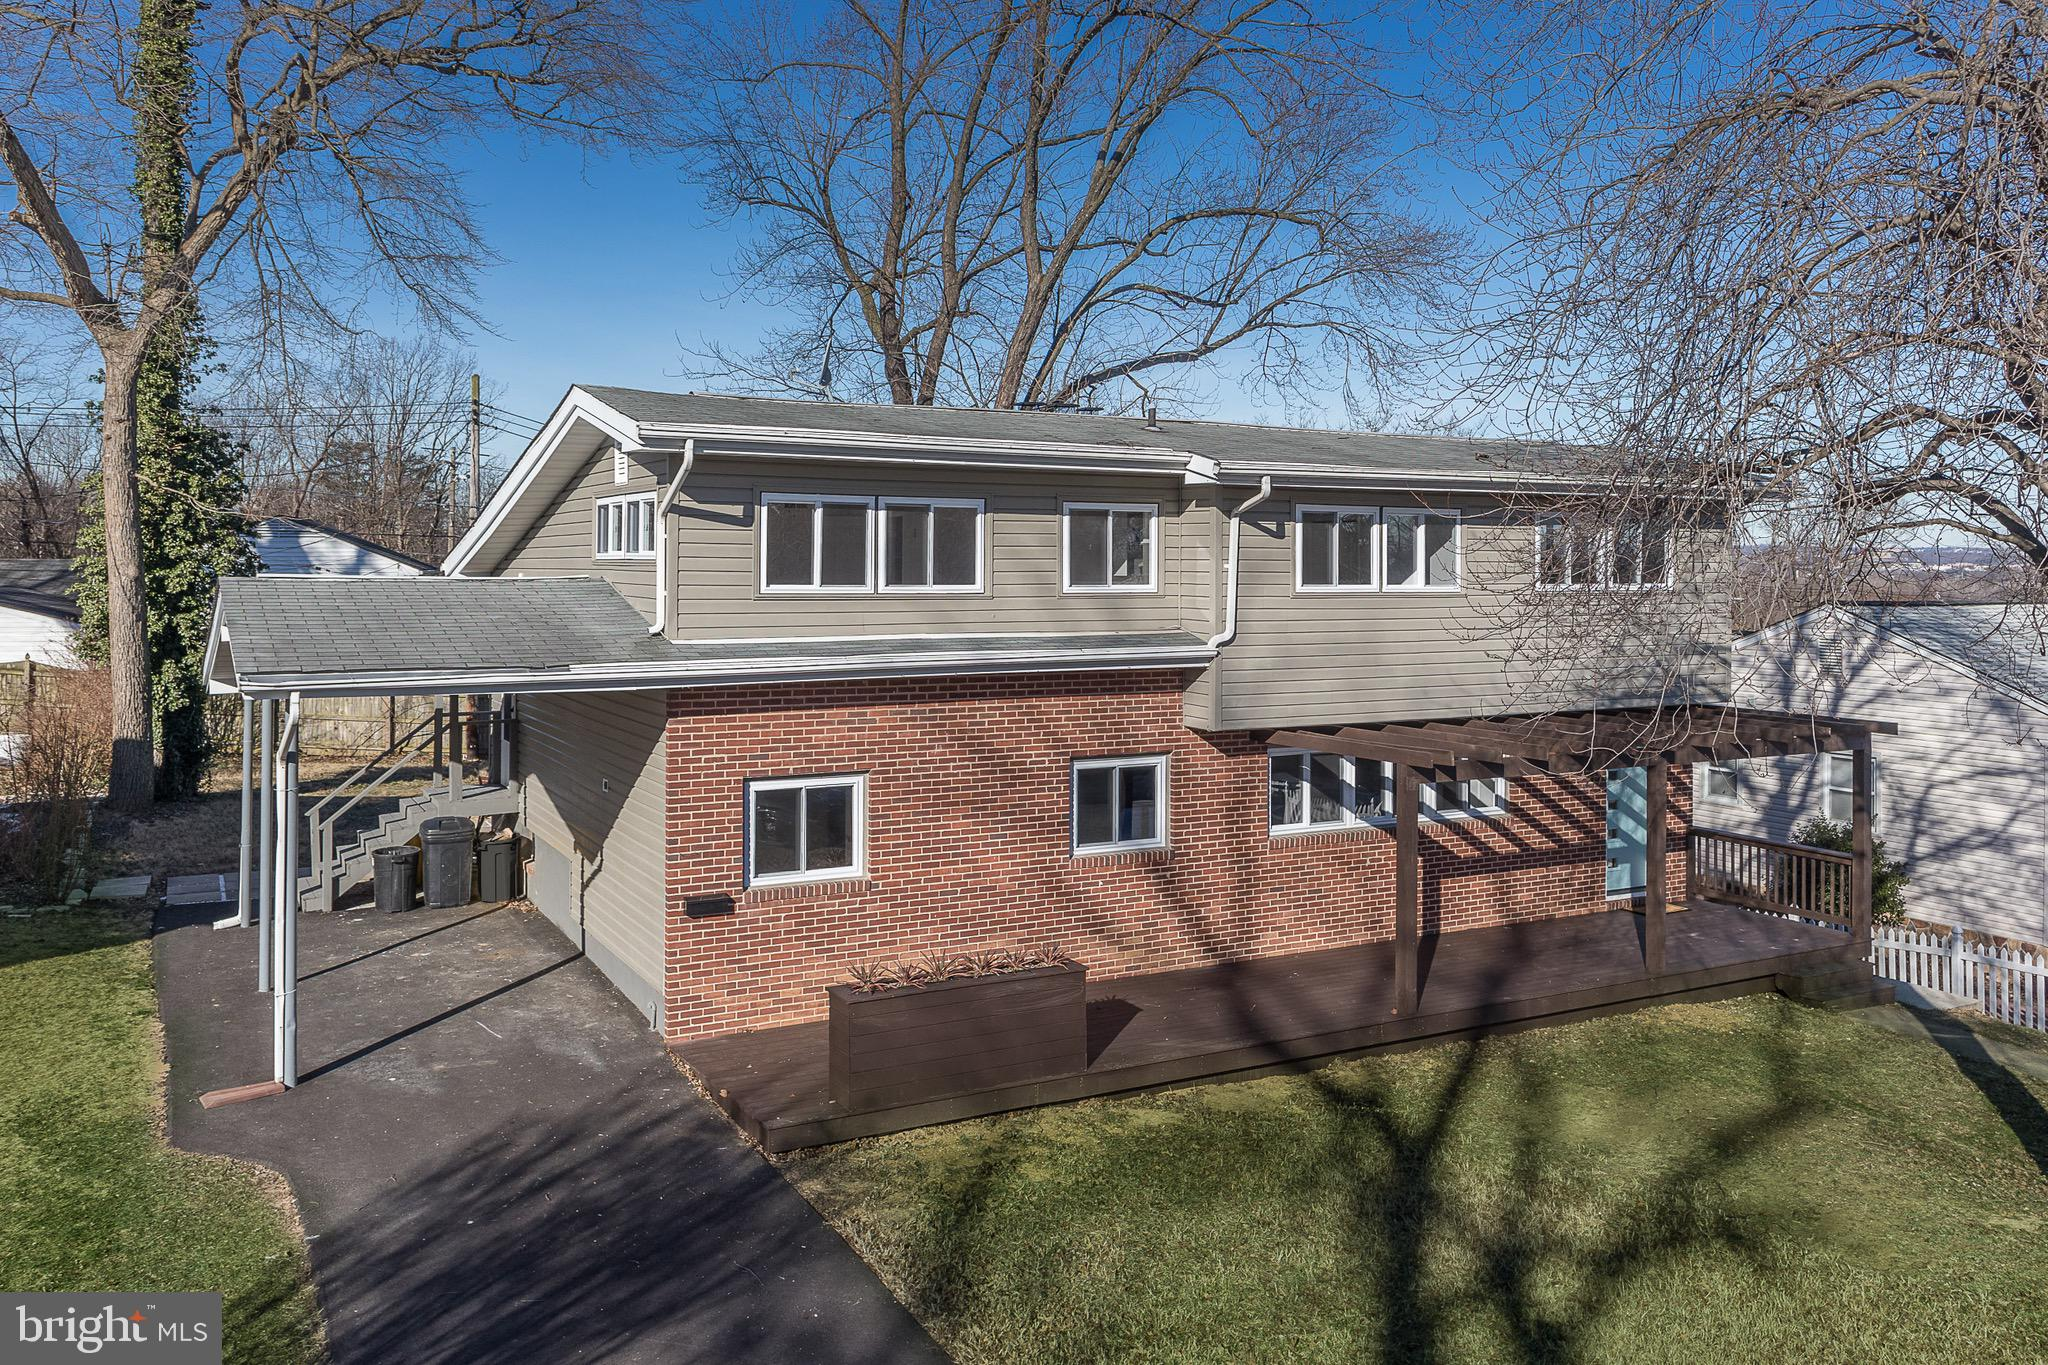 217 CORONET DRIVE, LINTHICUM HEIGHTS, MD 21090